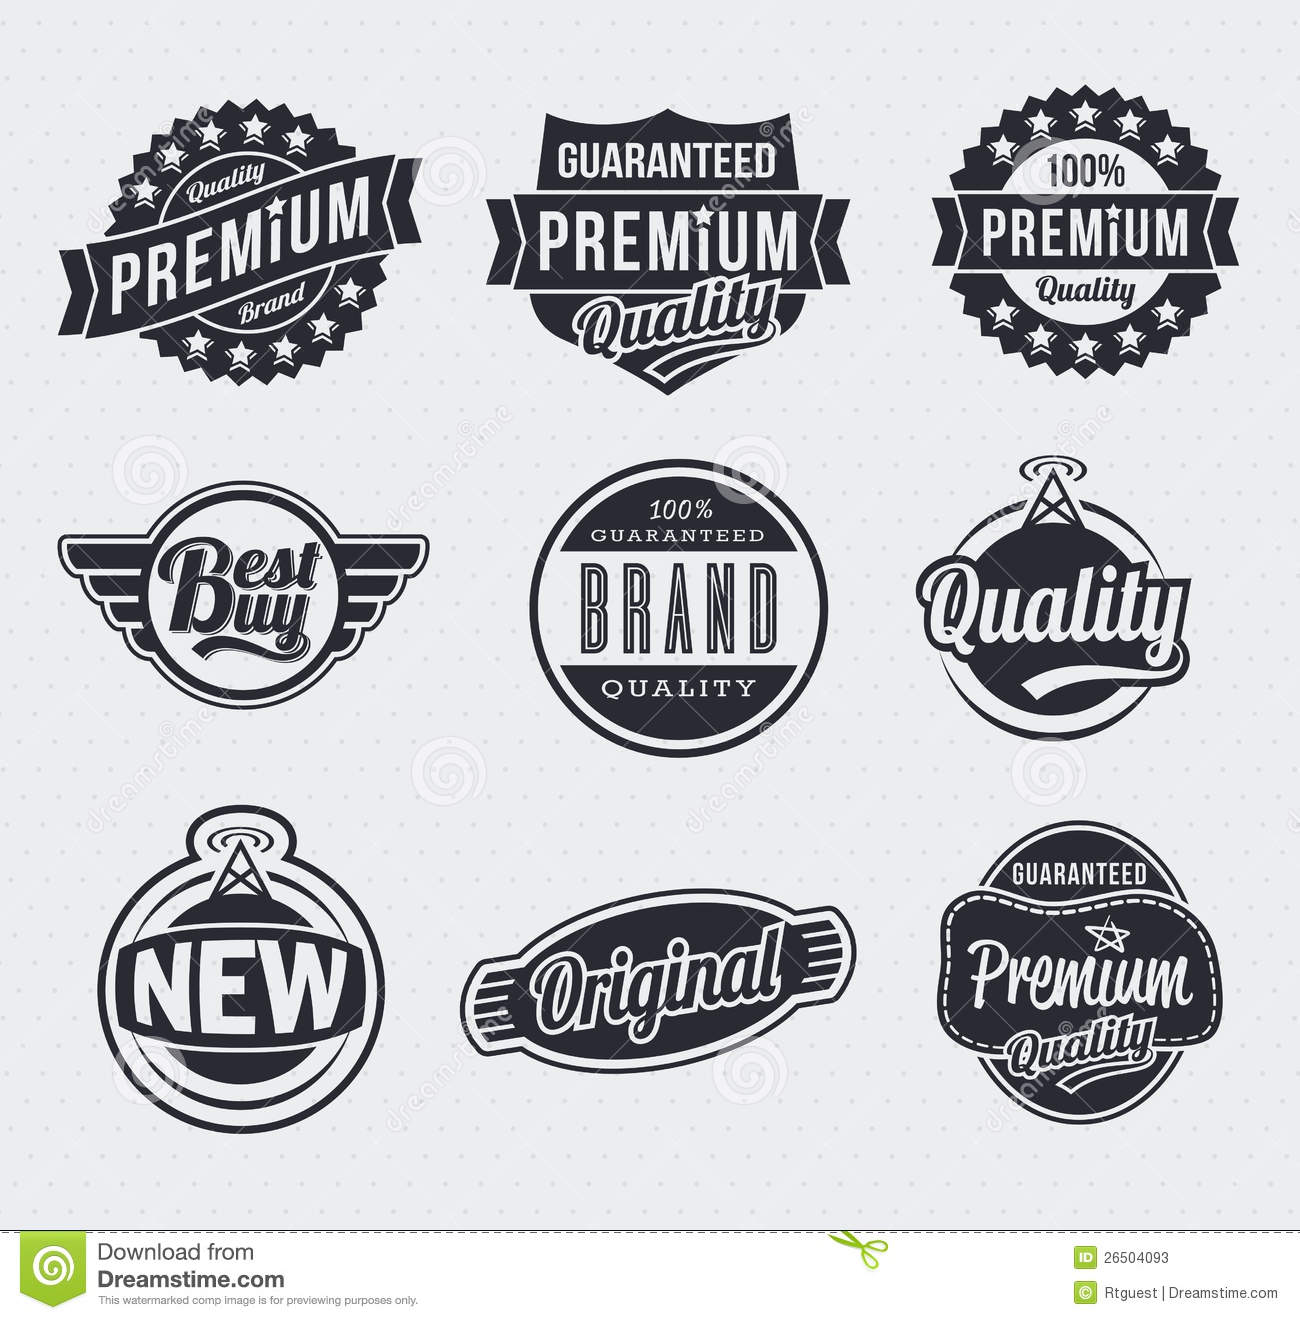 1000+ images about vintage logo on Pinterest.